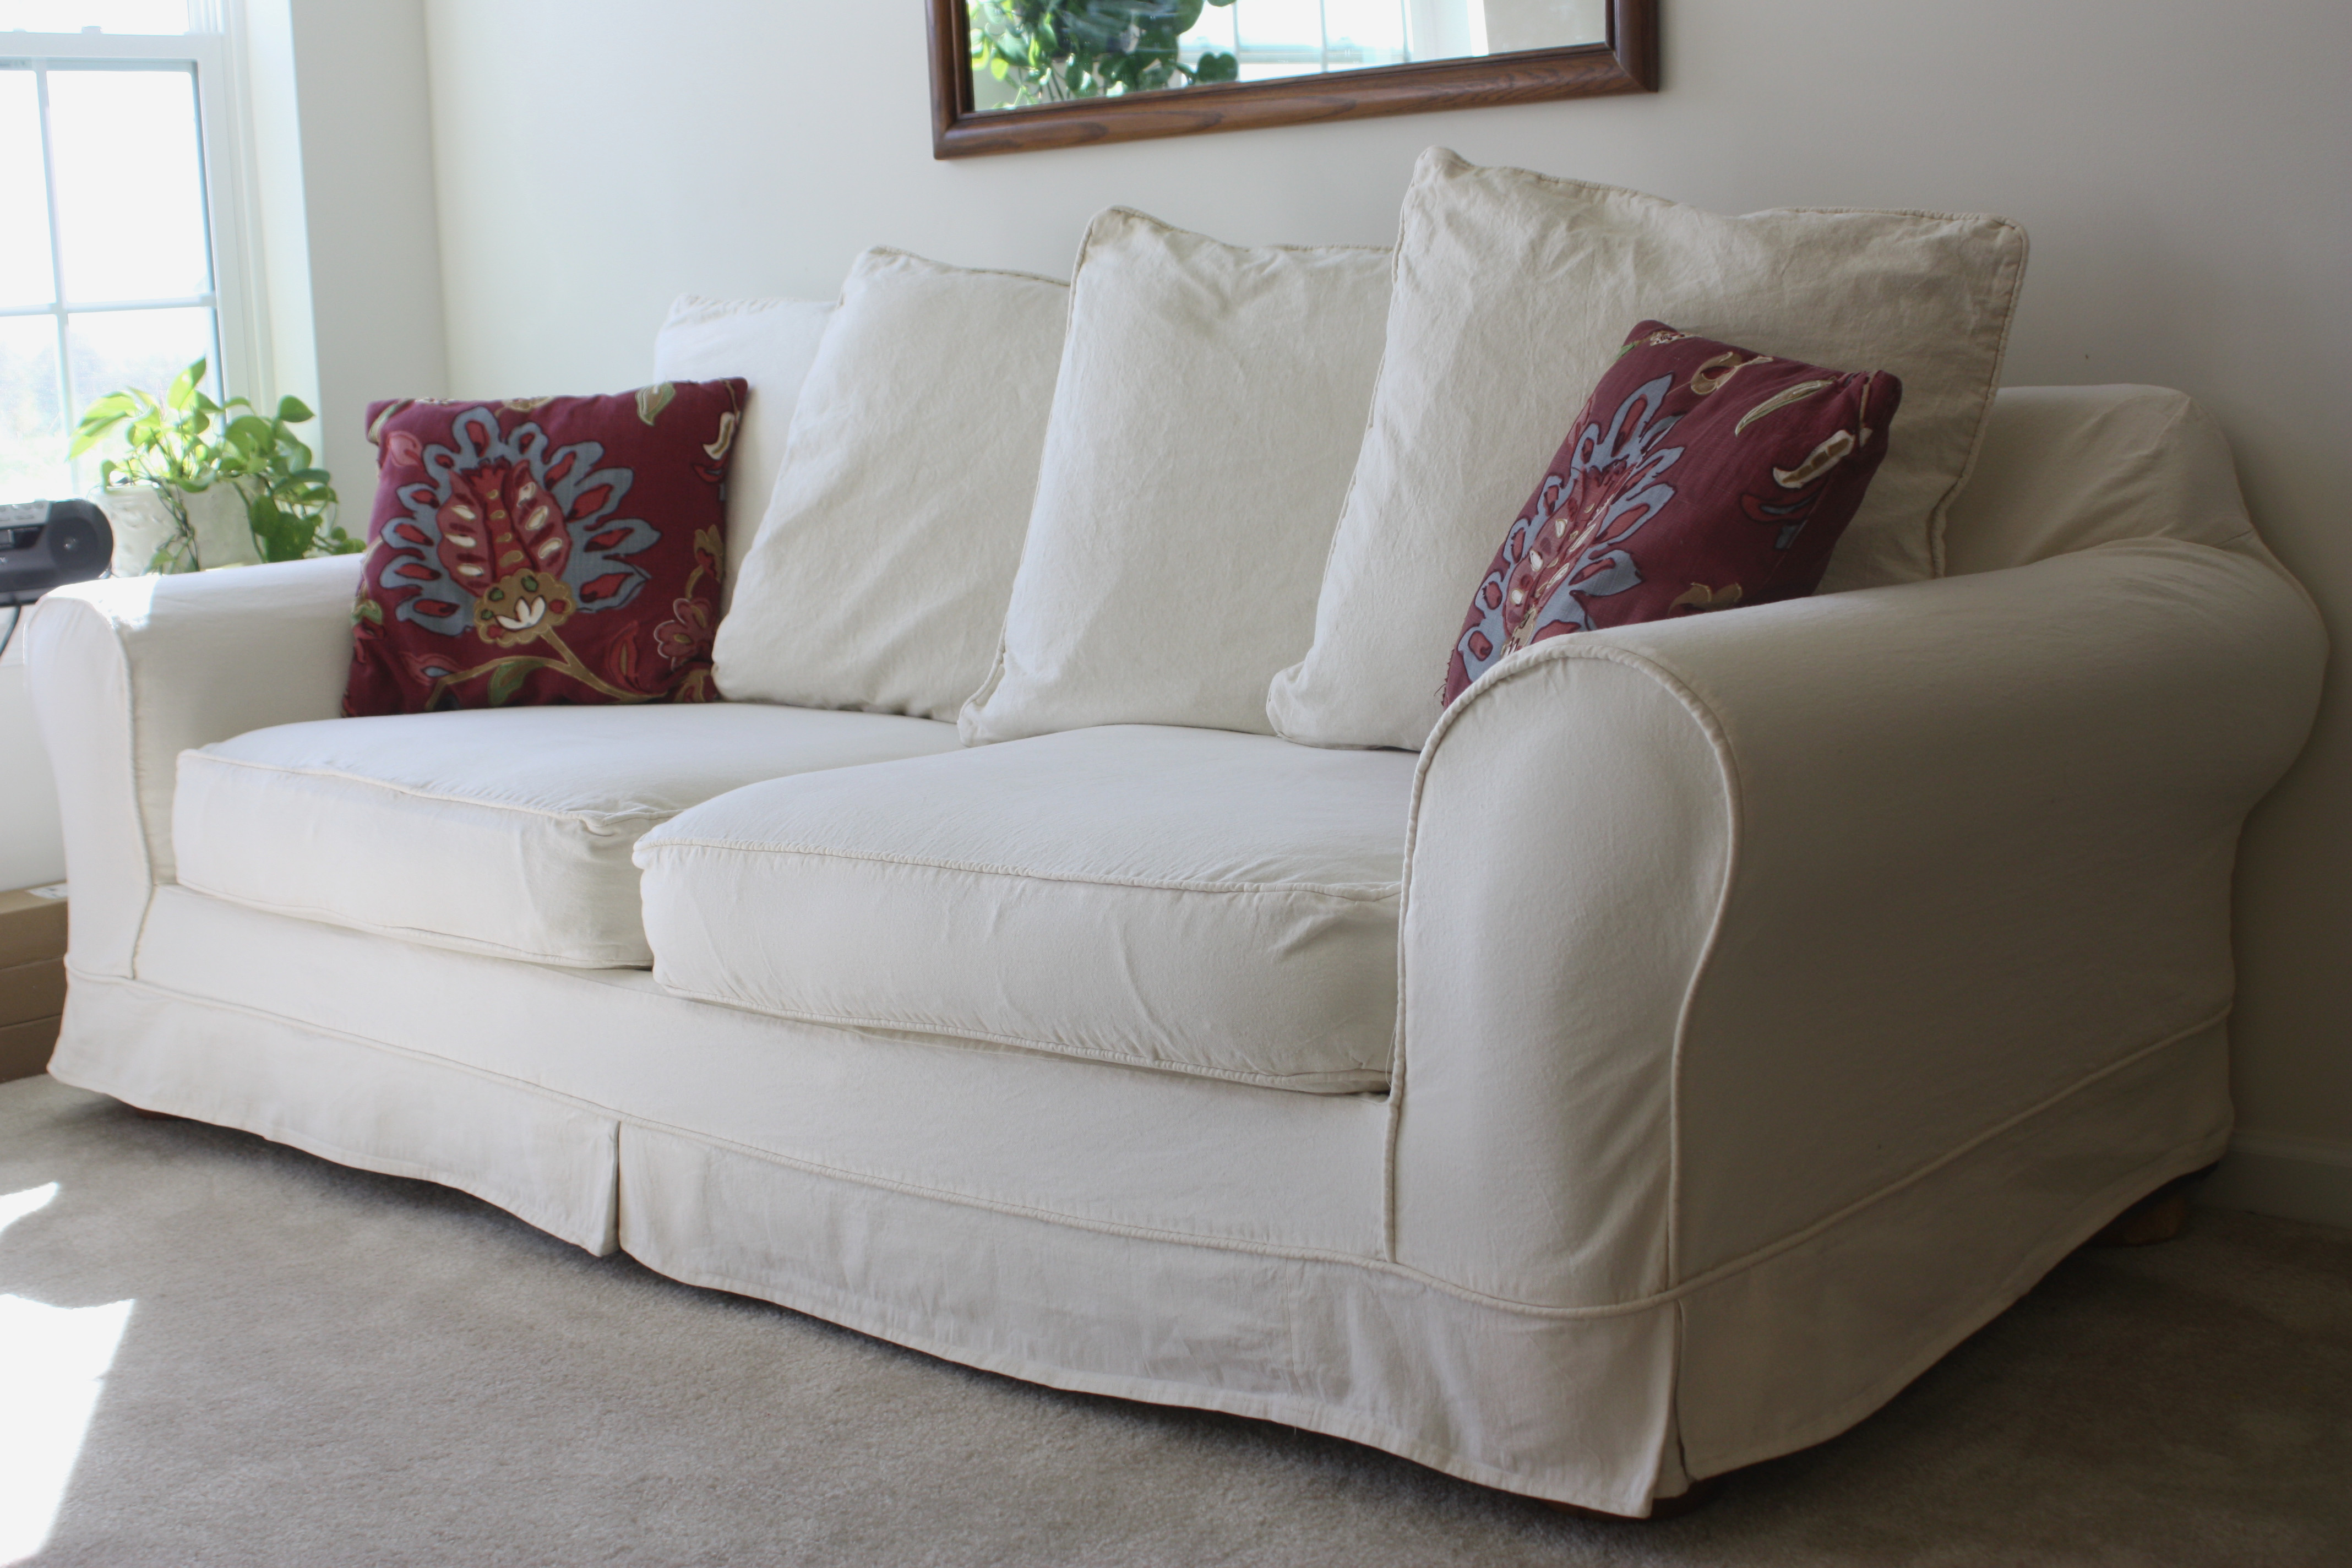 Best ideas about Bed Bath And Beyond Sofa Covers . Save or Pin Sofa Covers Bed Bath and Beyond Gammoe Now.